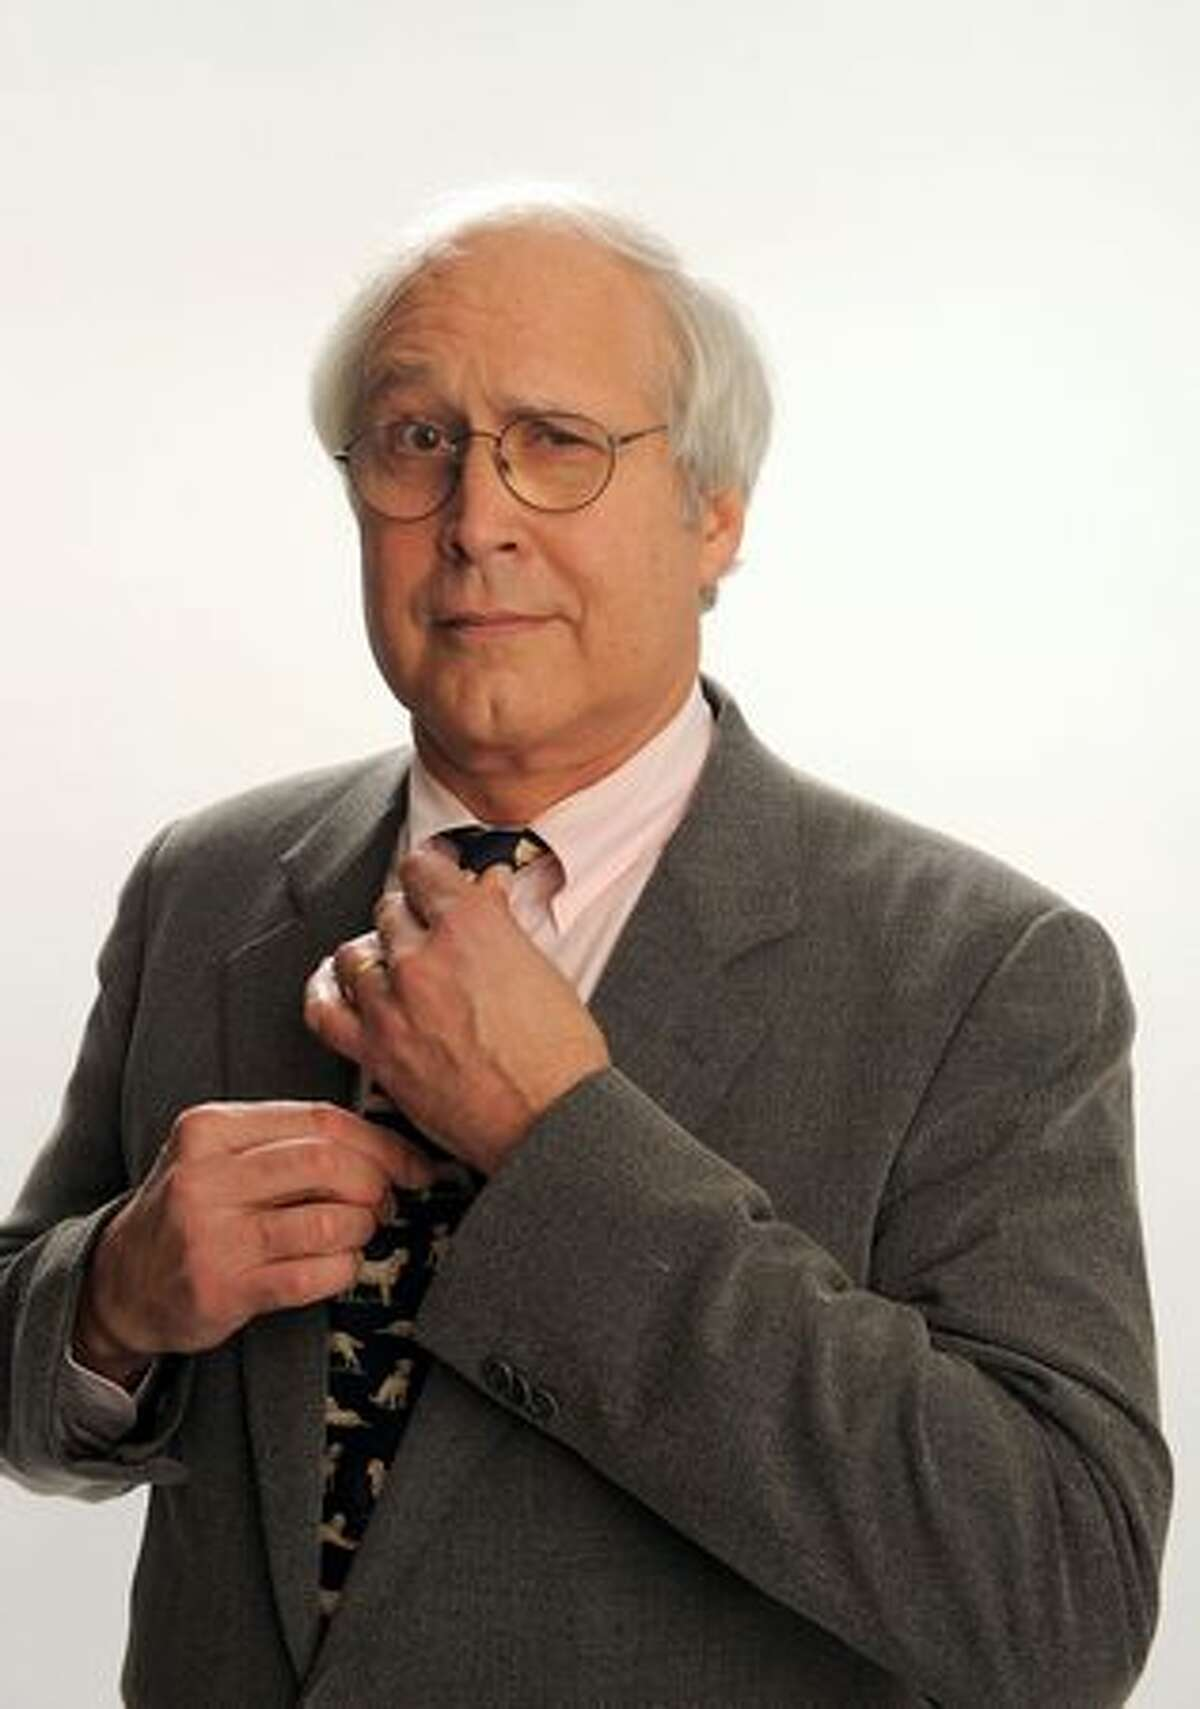 Actor Chevy Chase poses for a portrait.